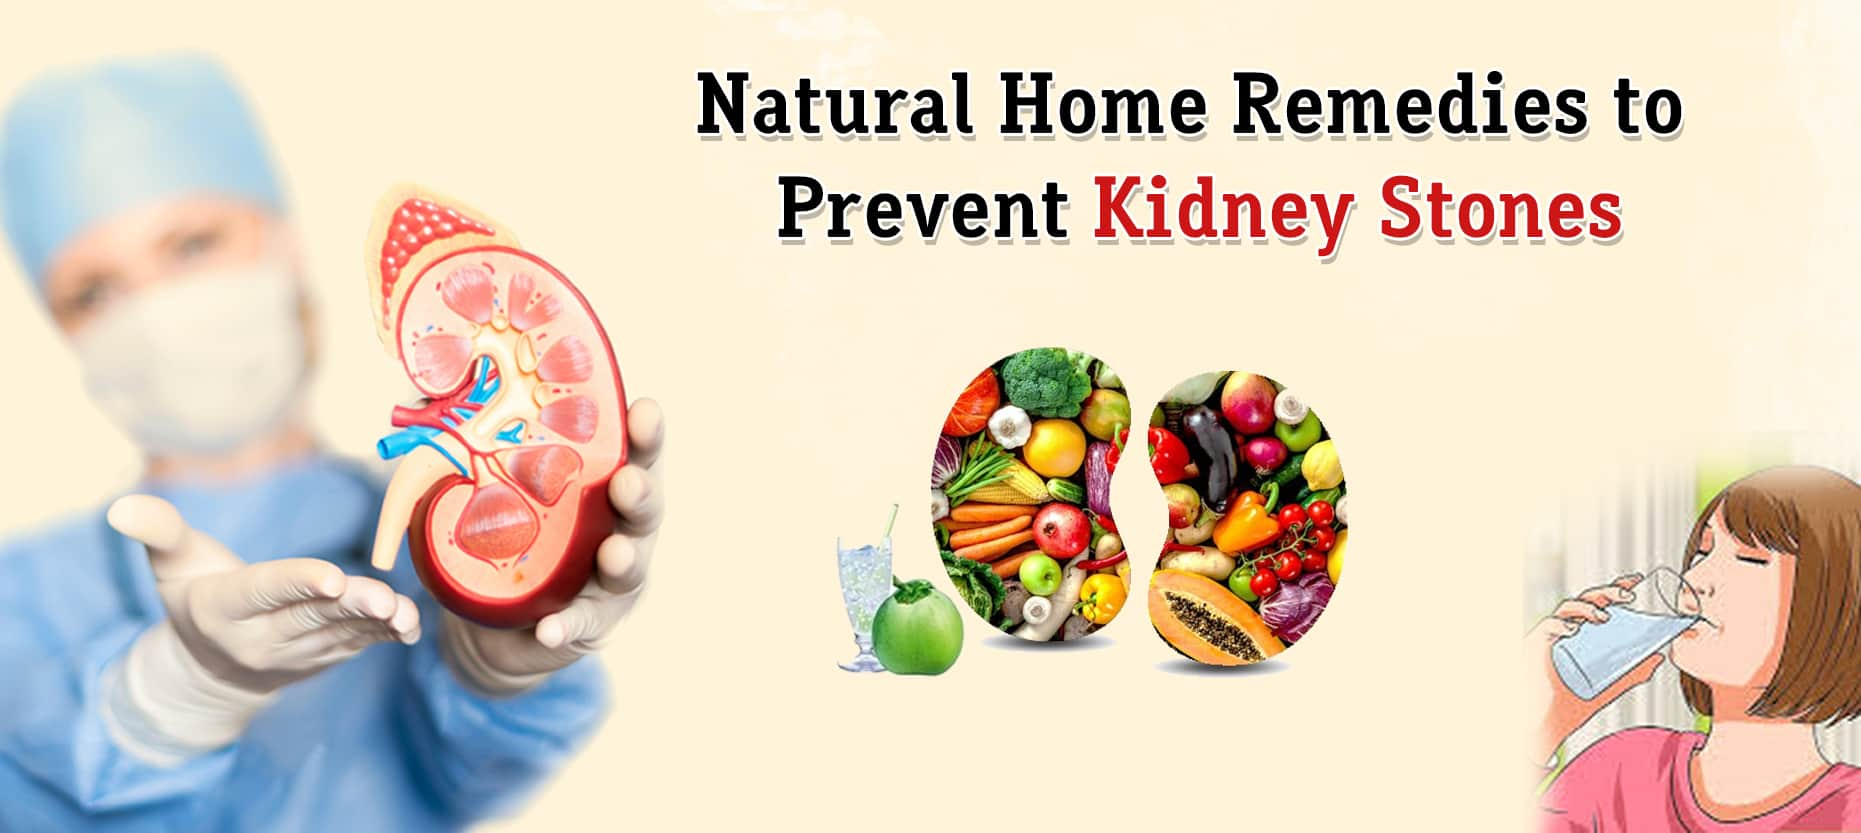 Natural Home Remedies to Prevent Kidney Stones